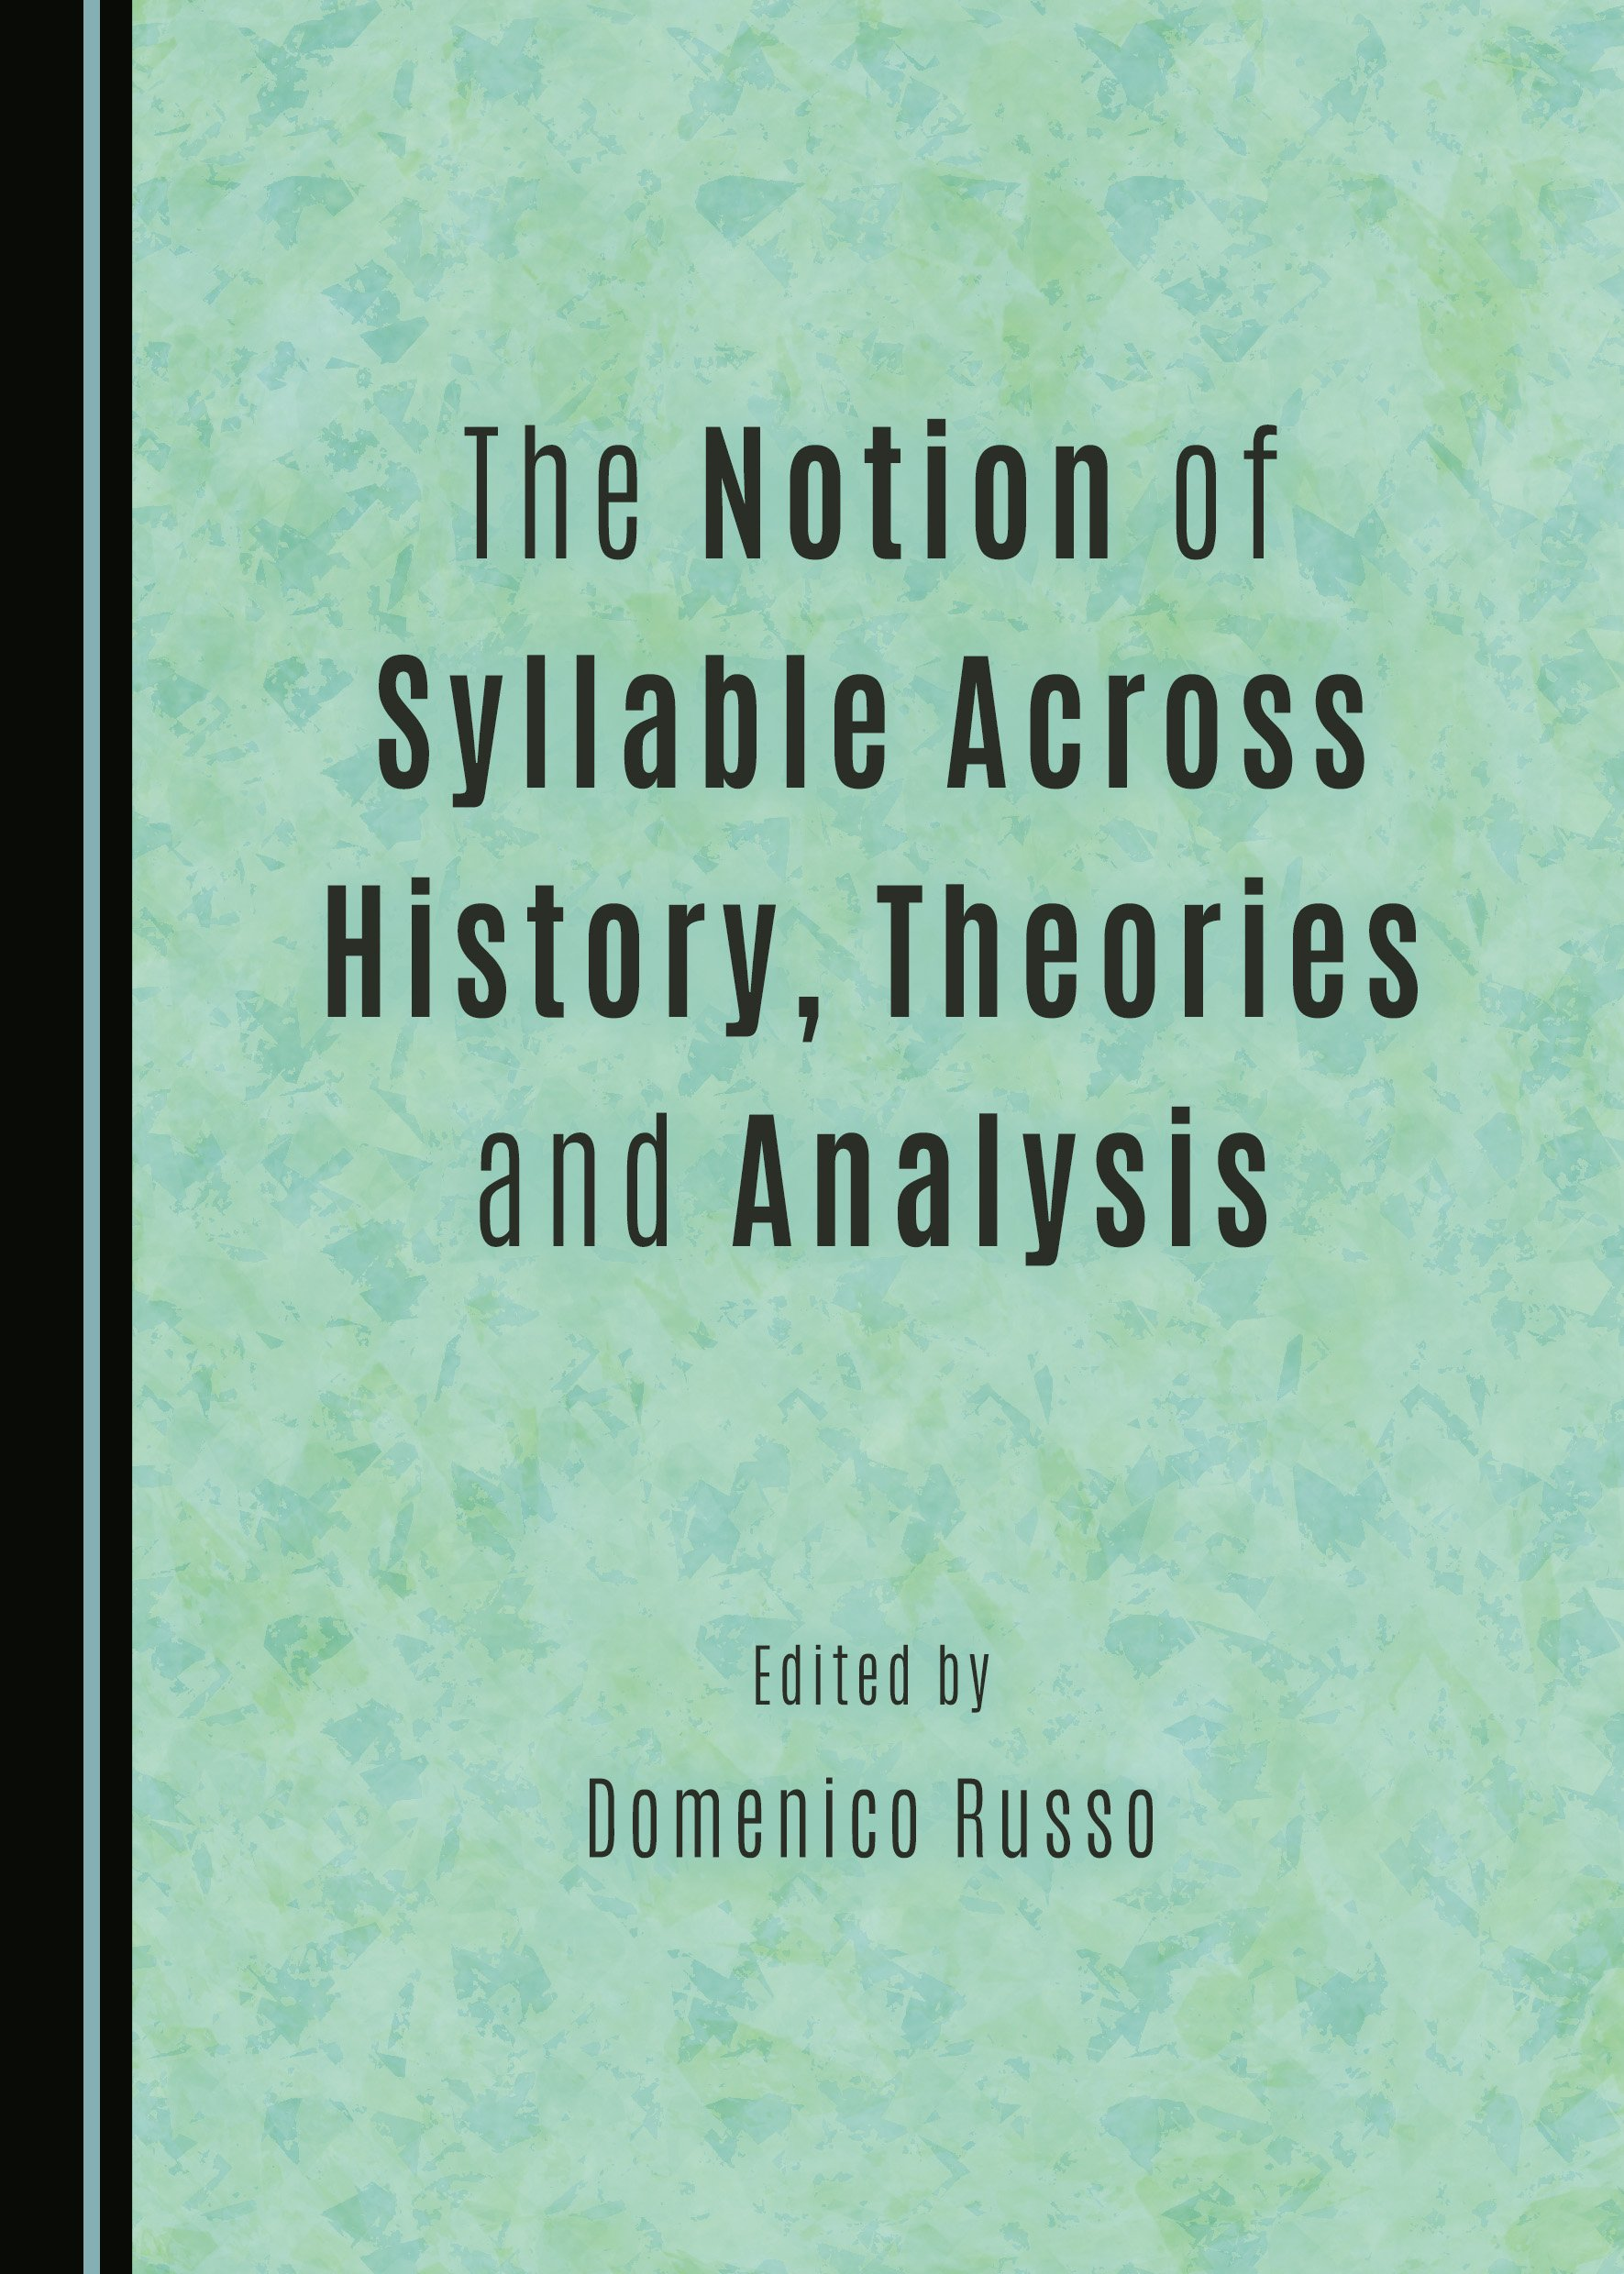 The Notion of Syllable Across History, Theories and Analysis